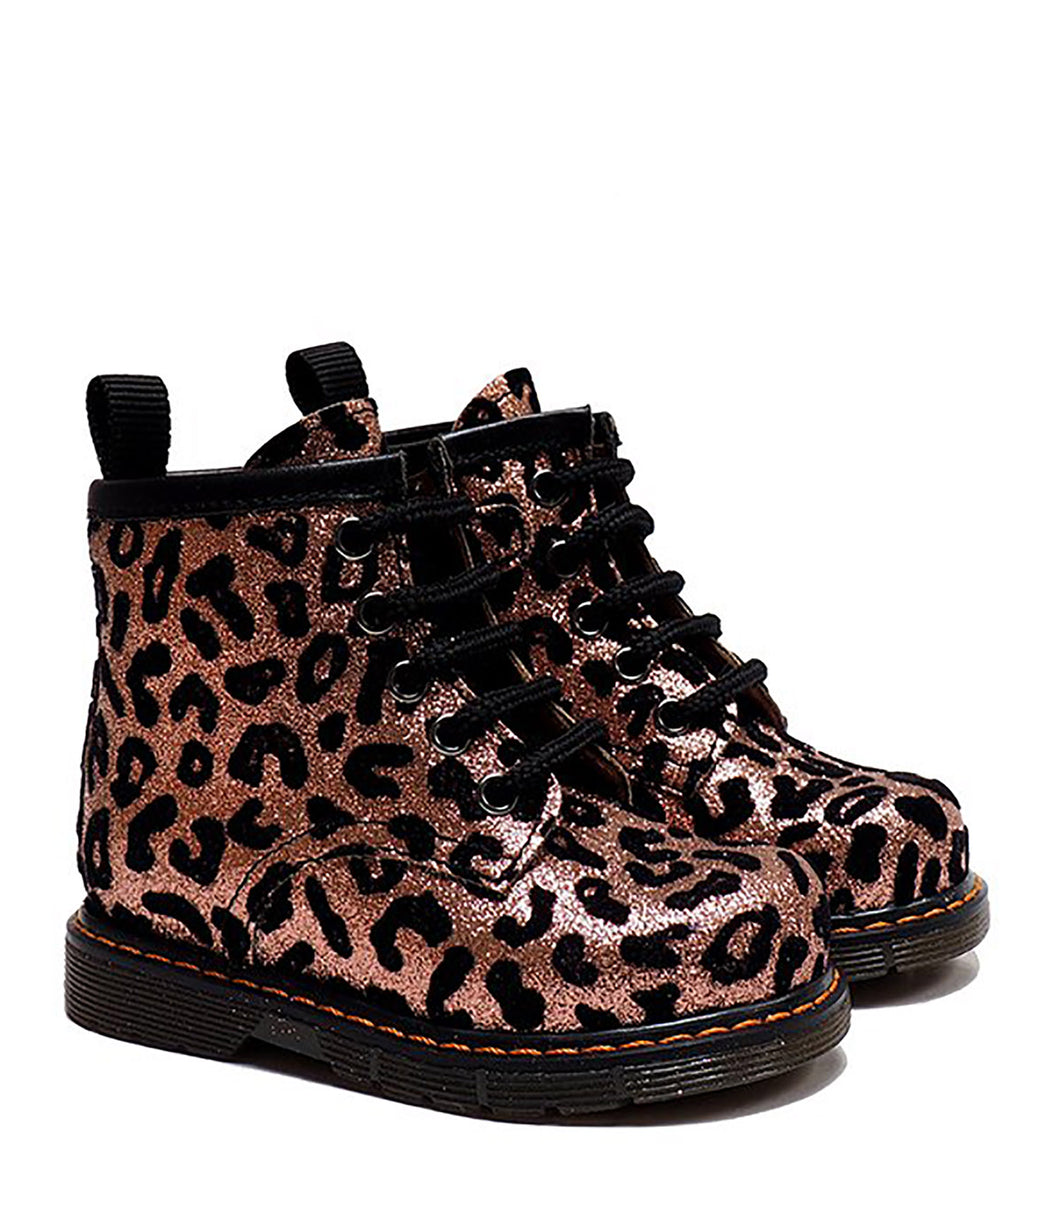 Toddler Boots in Pink Animalier Glitter